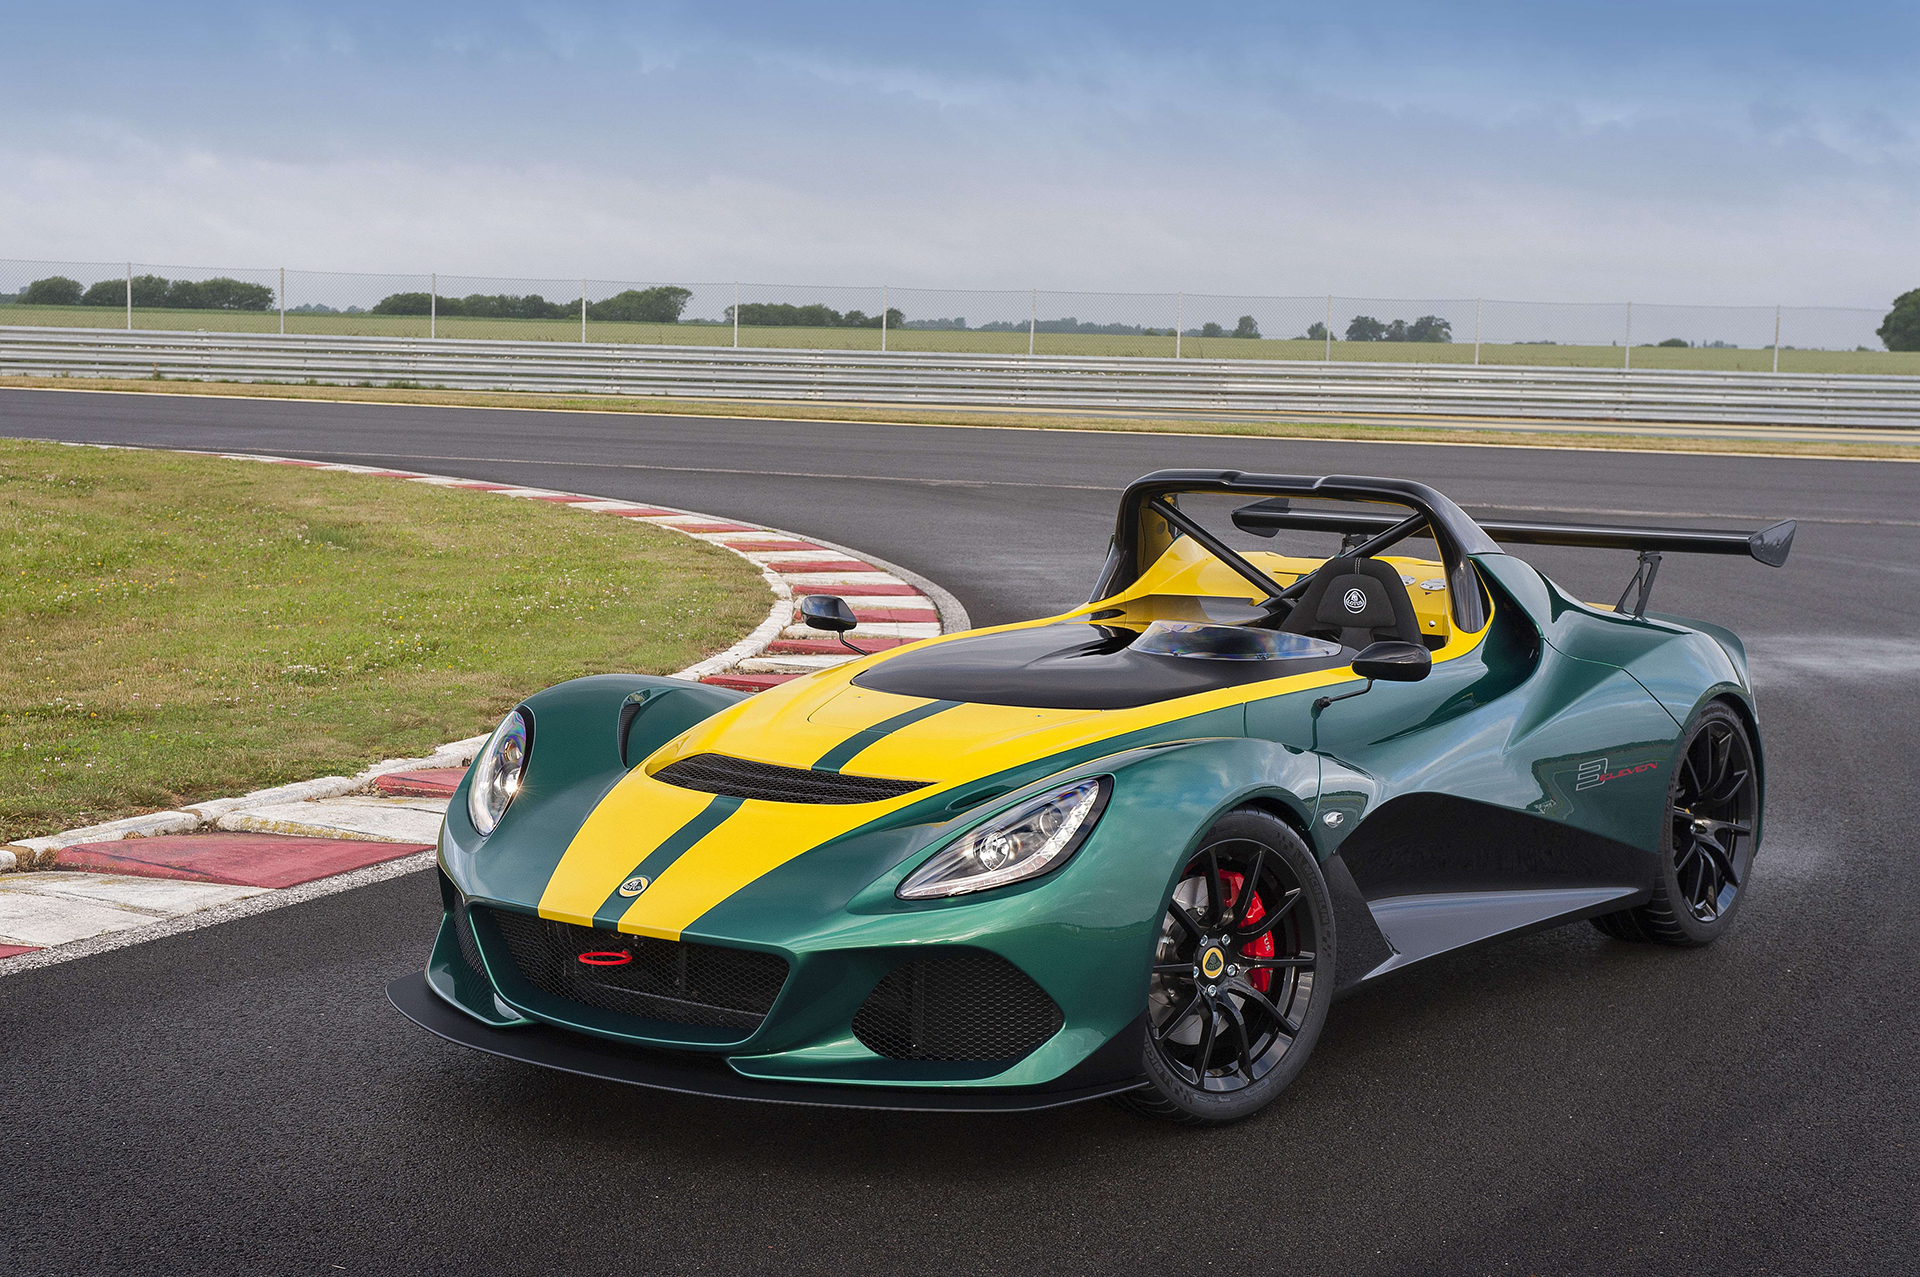 Lotus Cars 3-Eleven - profil avant / front side-face